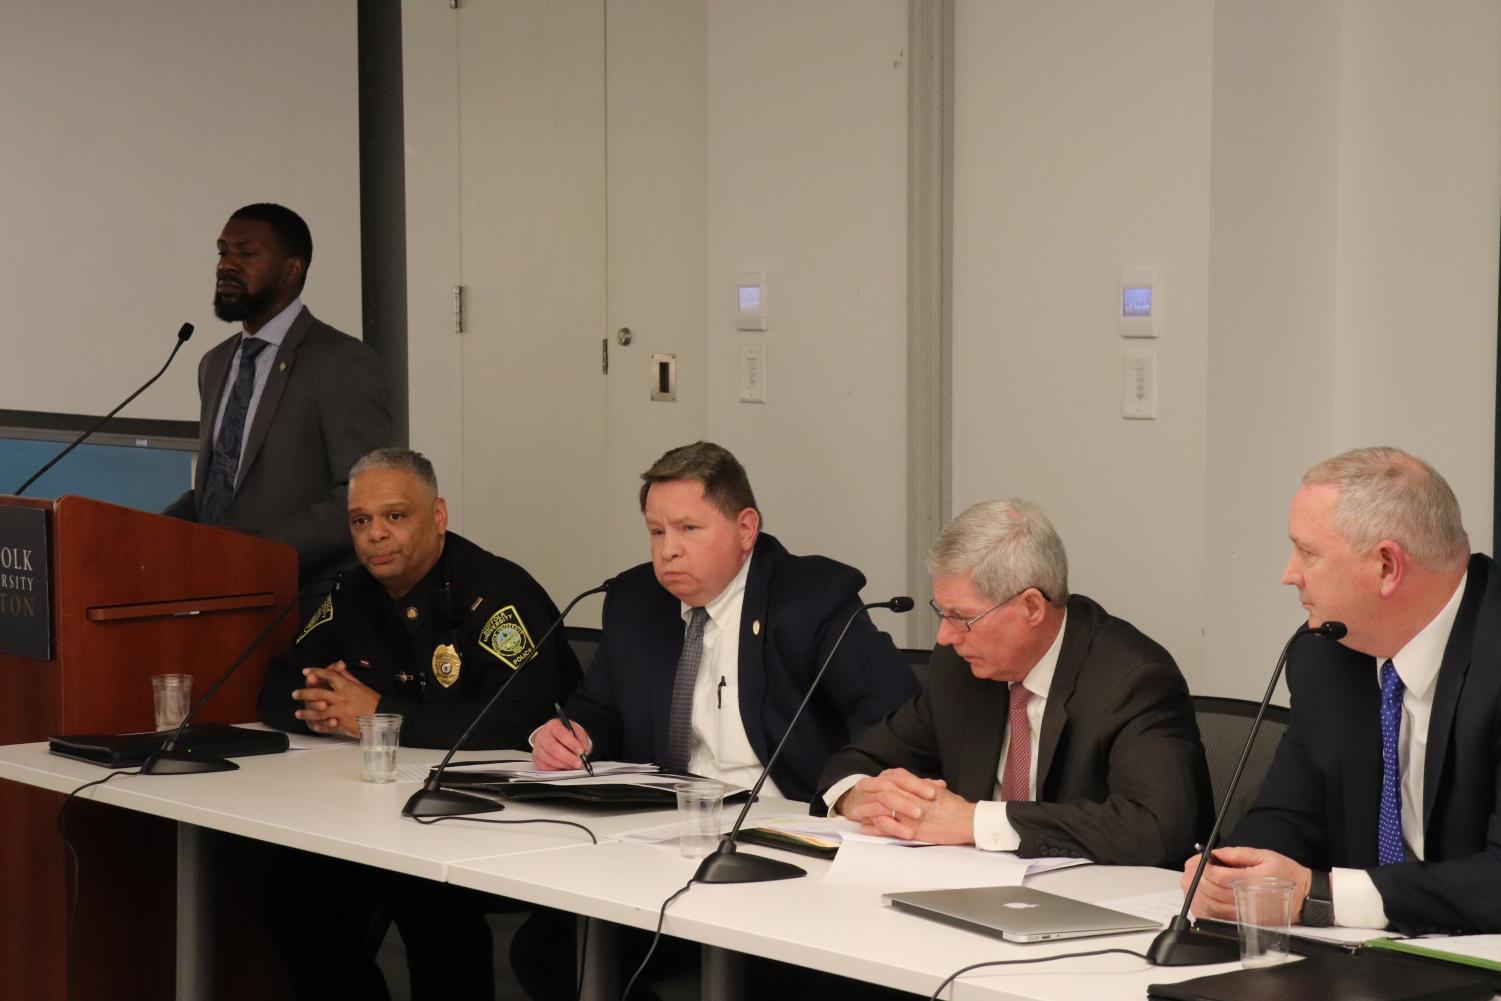 (From Left) Associate Dean of Students Shawn Newton, Lt. Ramón Nuñez, Cpt. Ken Walsh, Chief Gerard Coletta, Cpt. Tim Connolly